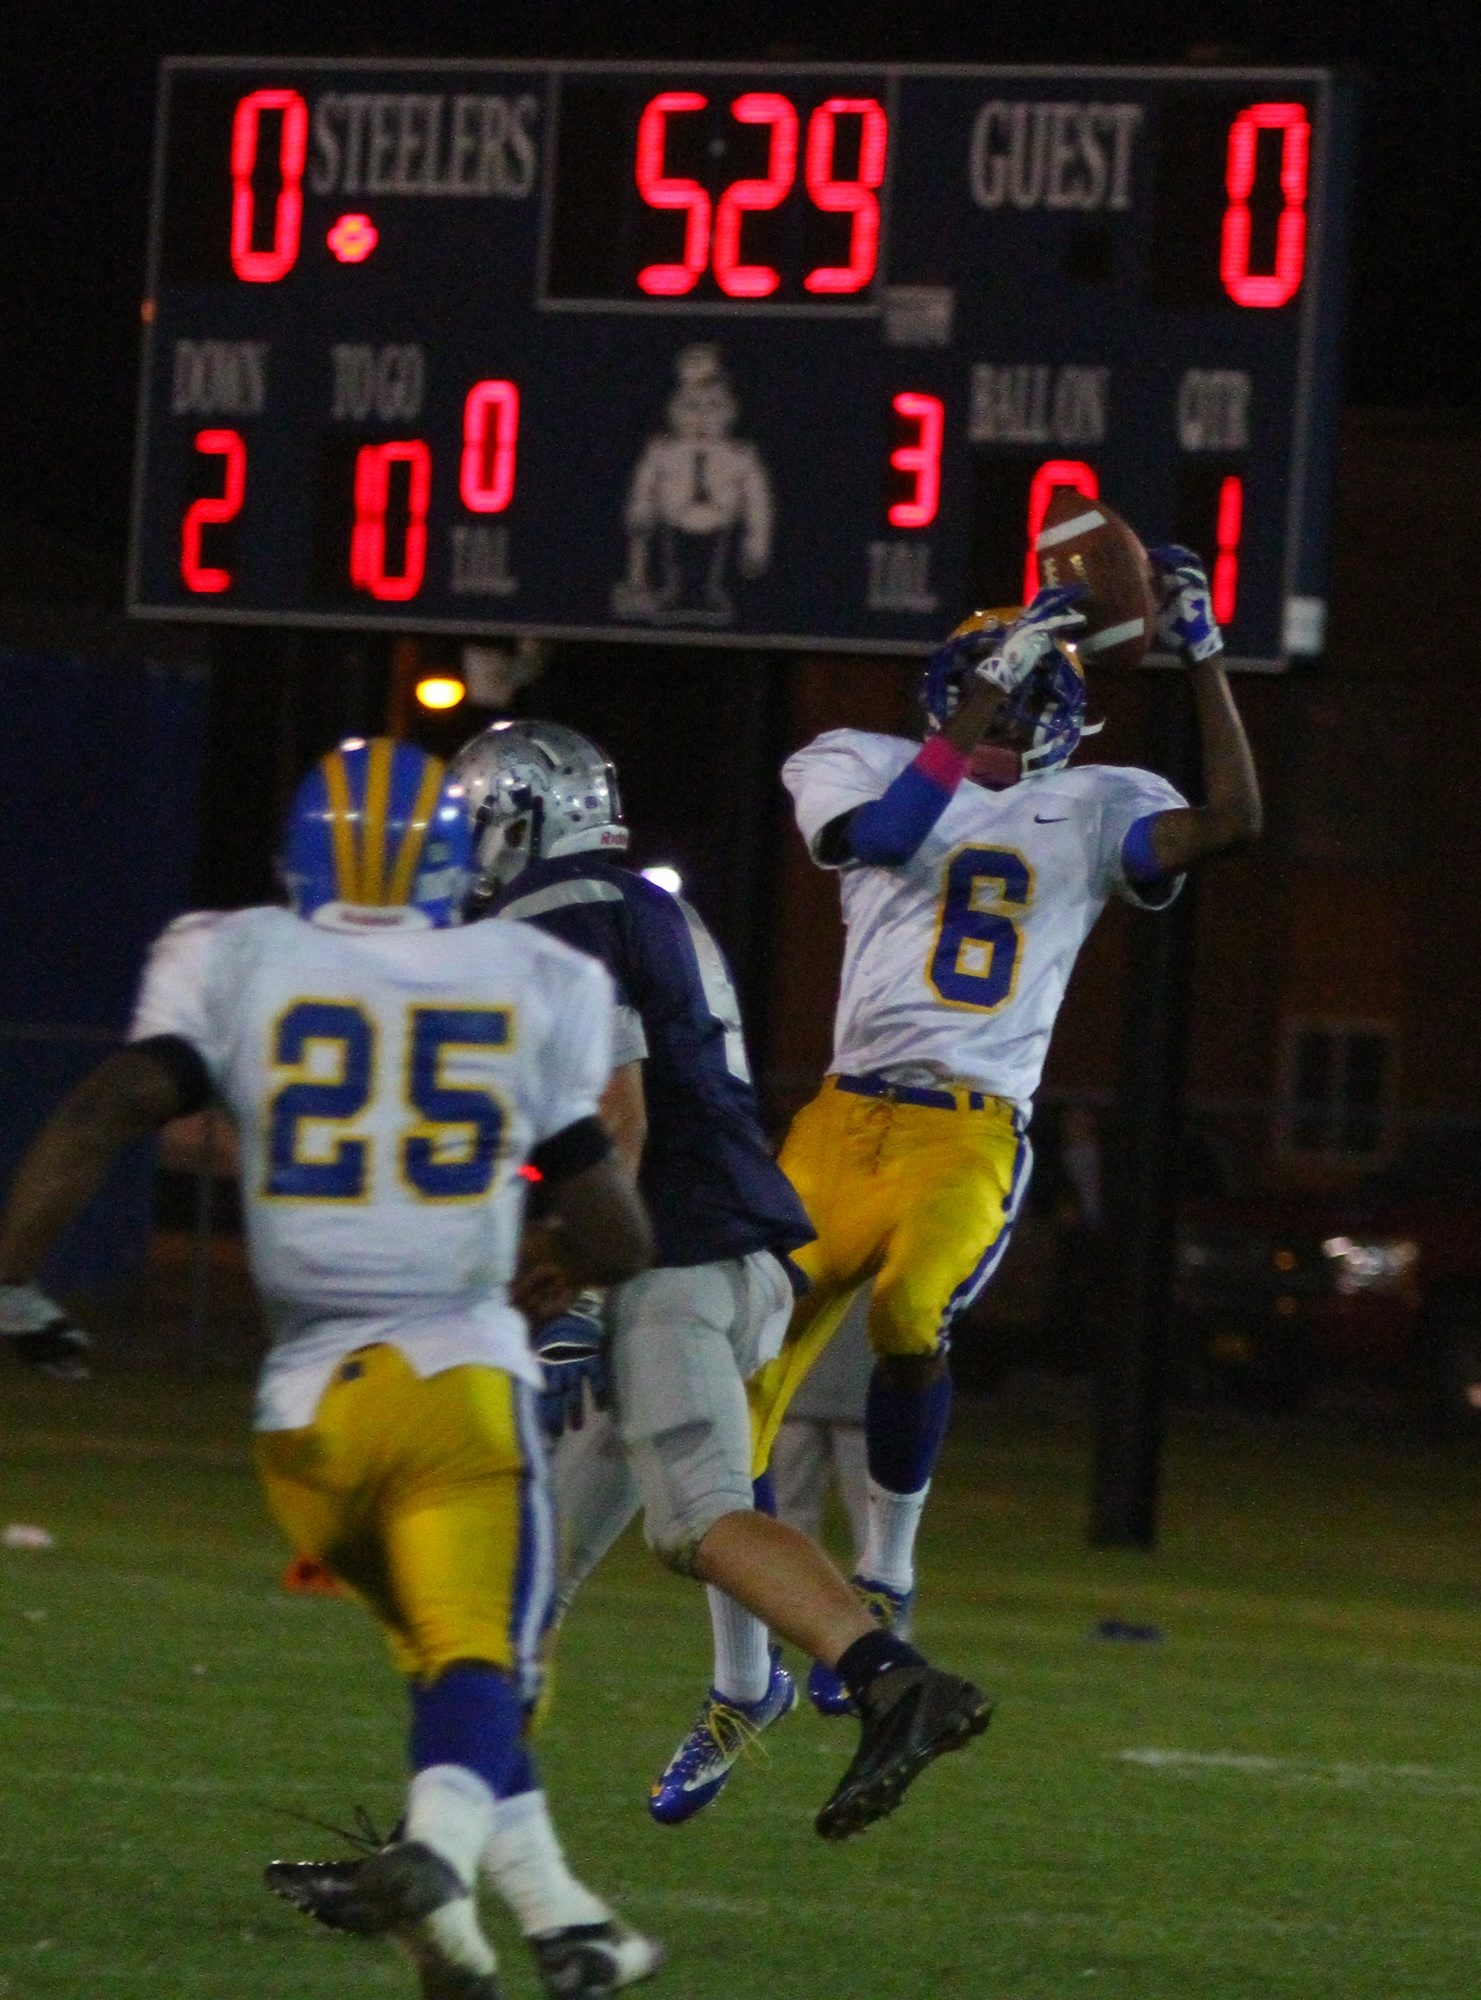 Cleveland Hill's Jared Watkins (6) intercepts a ball and returns it for a TD against Lackawanna on Friday night.